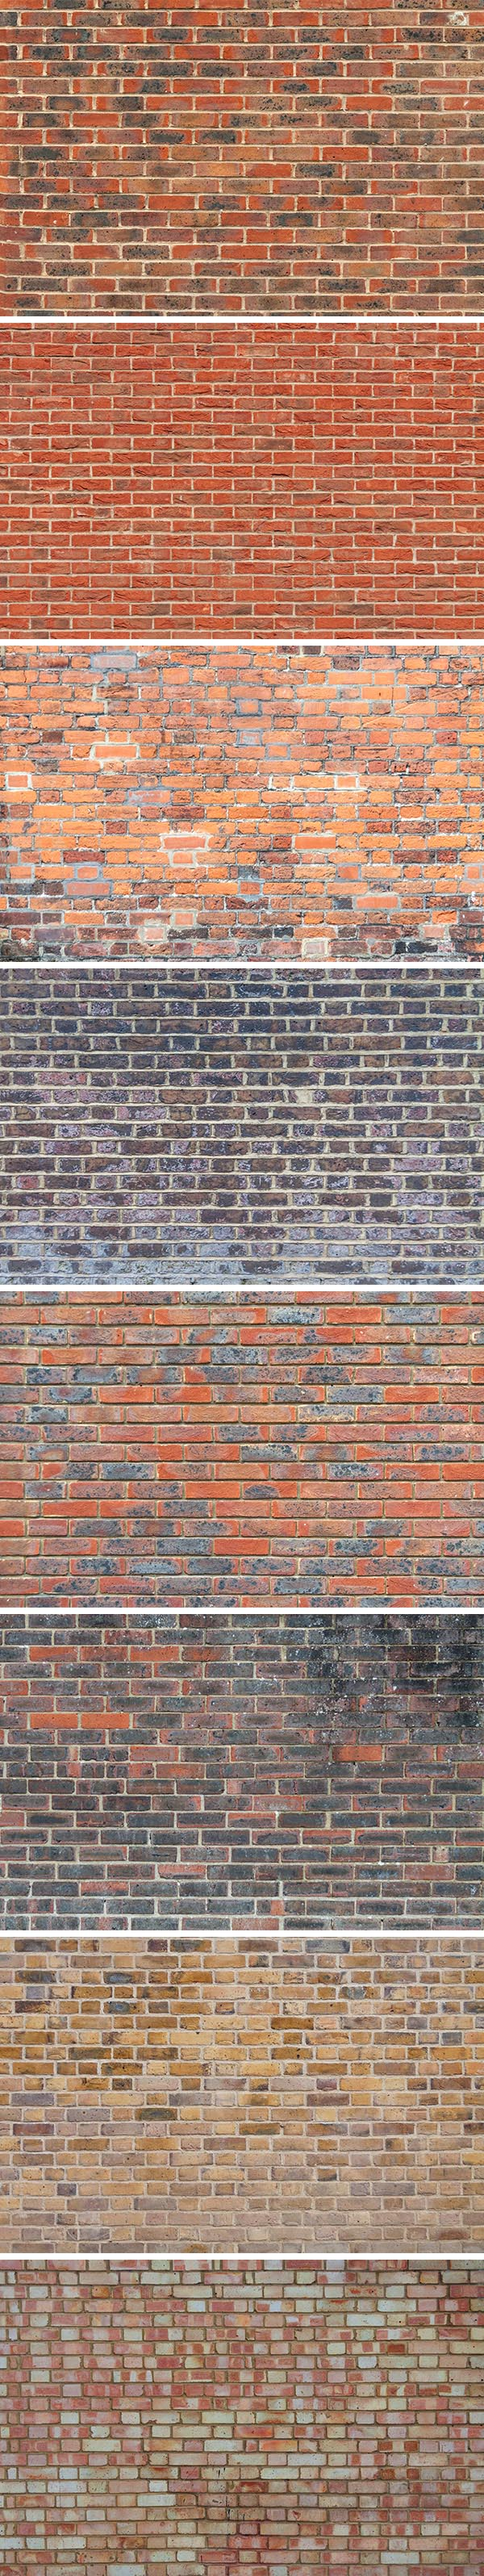 8 Free Brick Wall Texture Backgrounds